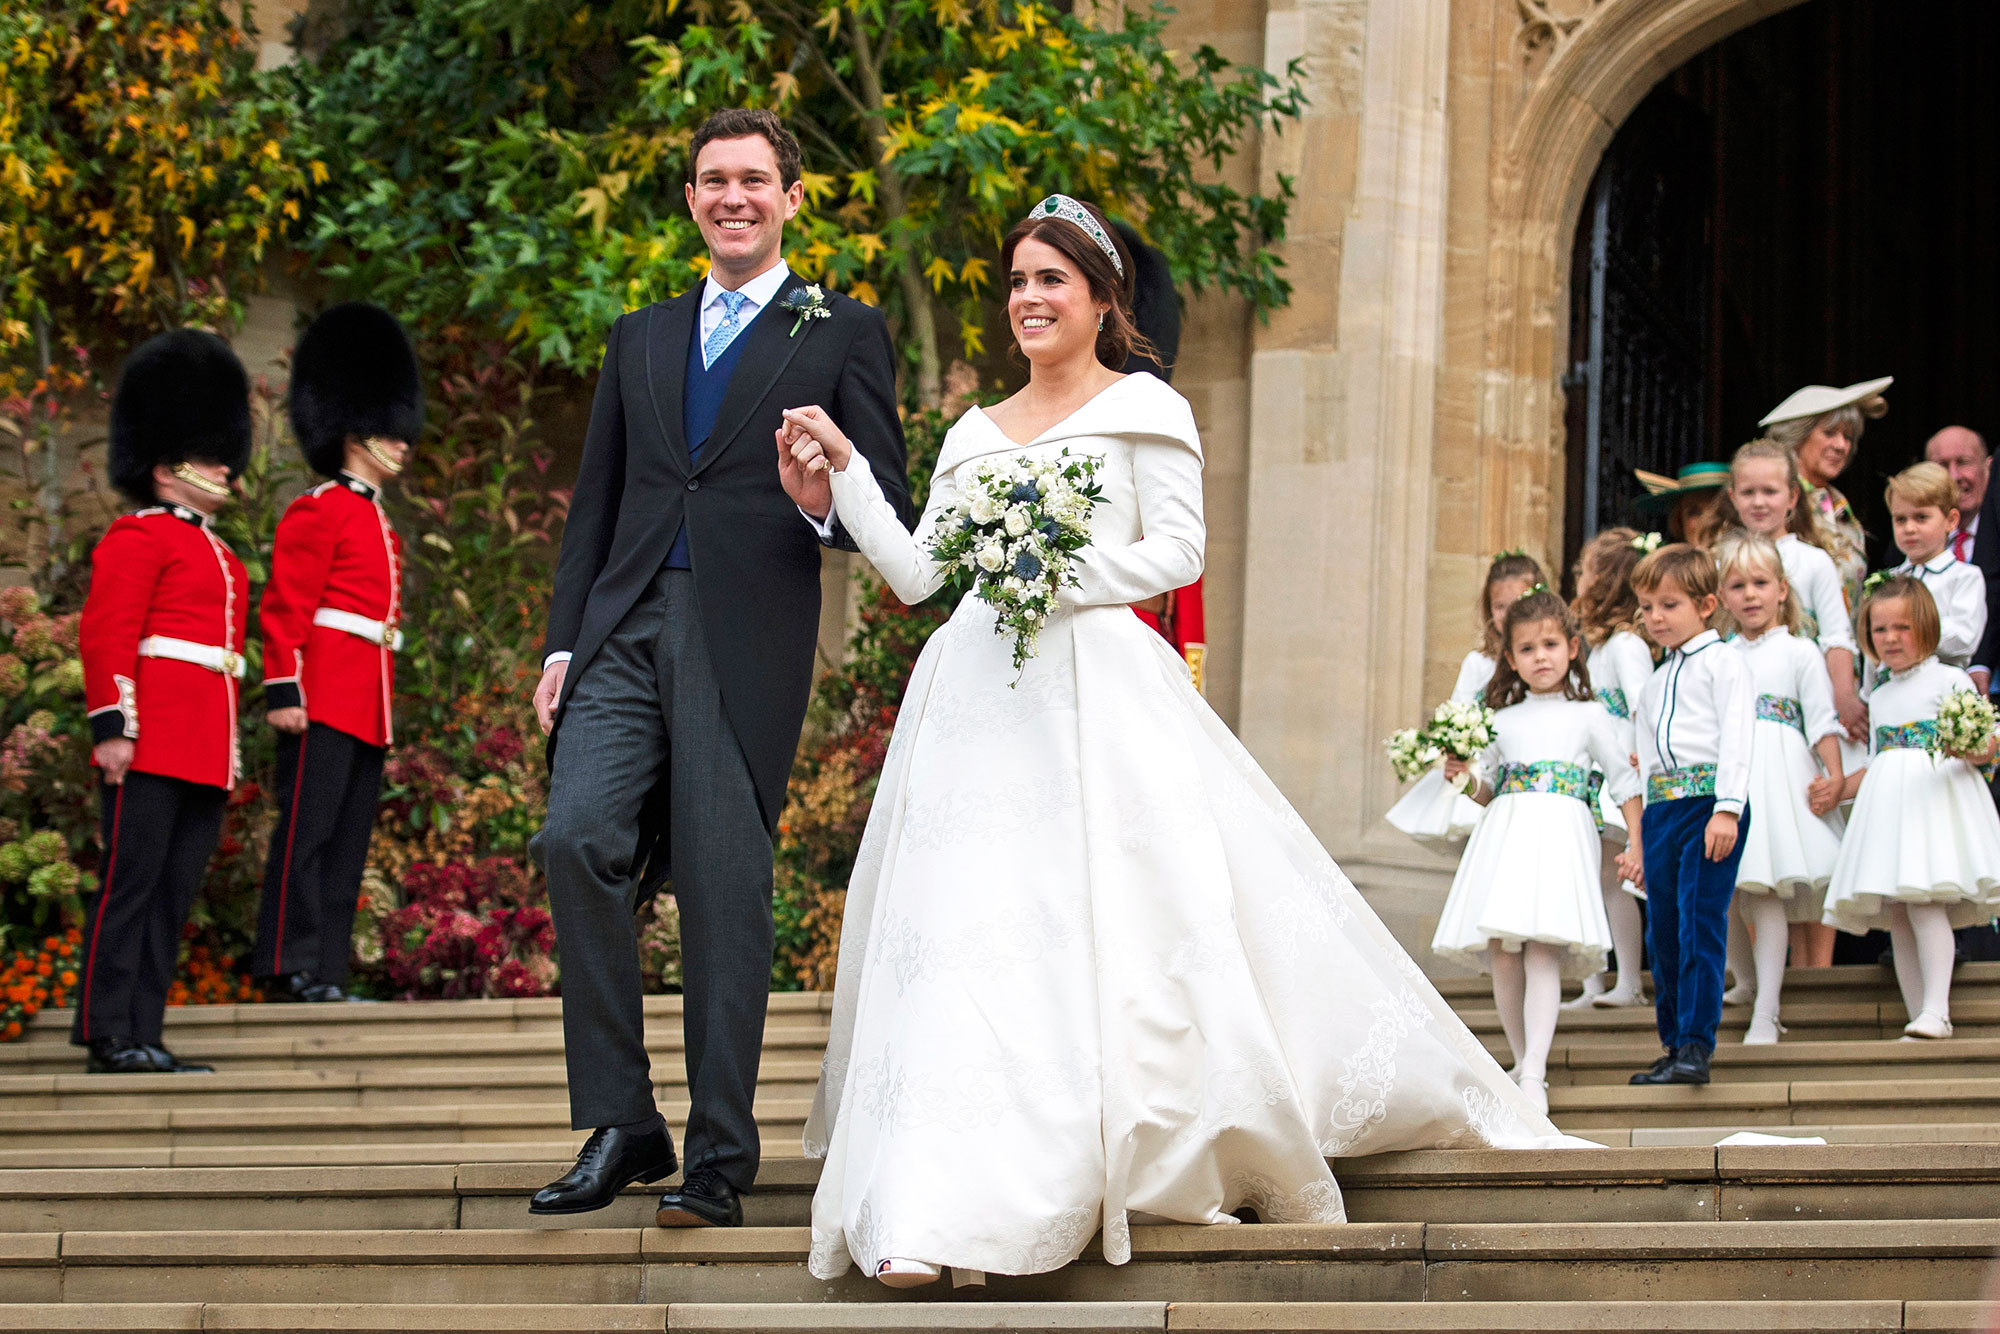 Princess Eugenie The Year in Love: The 11 Best Celebrity Wedding Dresses of 2018 - At the second royal wedding of the year at St George Chapel at Windsor Castle, Prince Andrew and the Duchess of York's youngest daughter tied the knot with Jack Brooksbank on October 12 in a custom long-sleeve Peter Pilotto gown that was specifically designed to show off a scar she has from a back surgery.